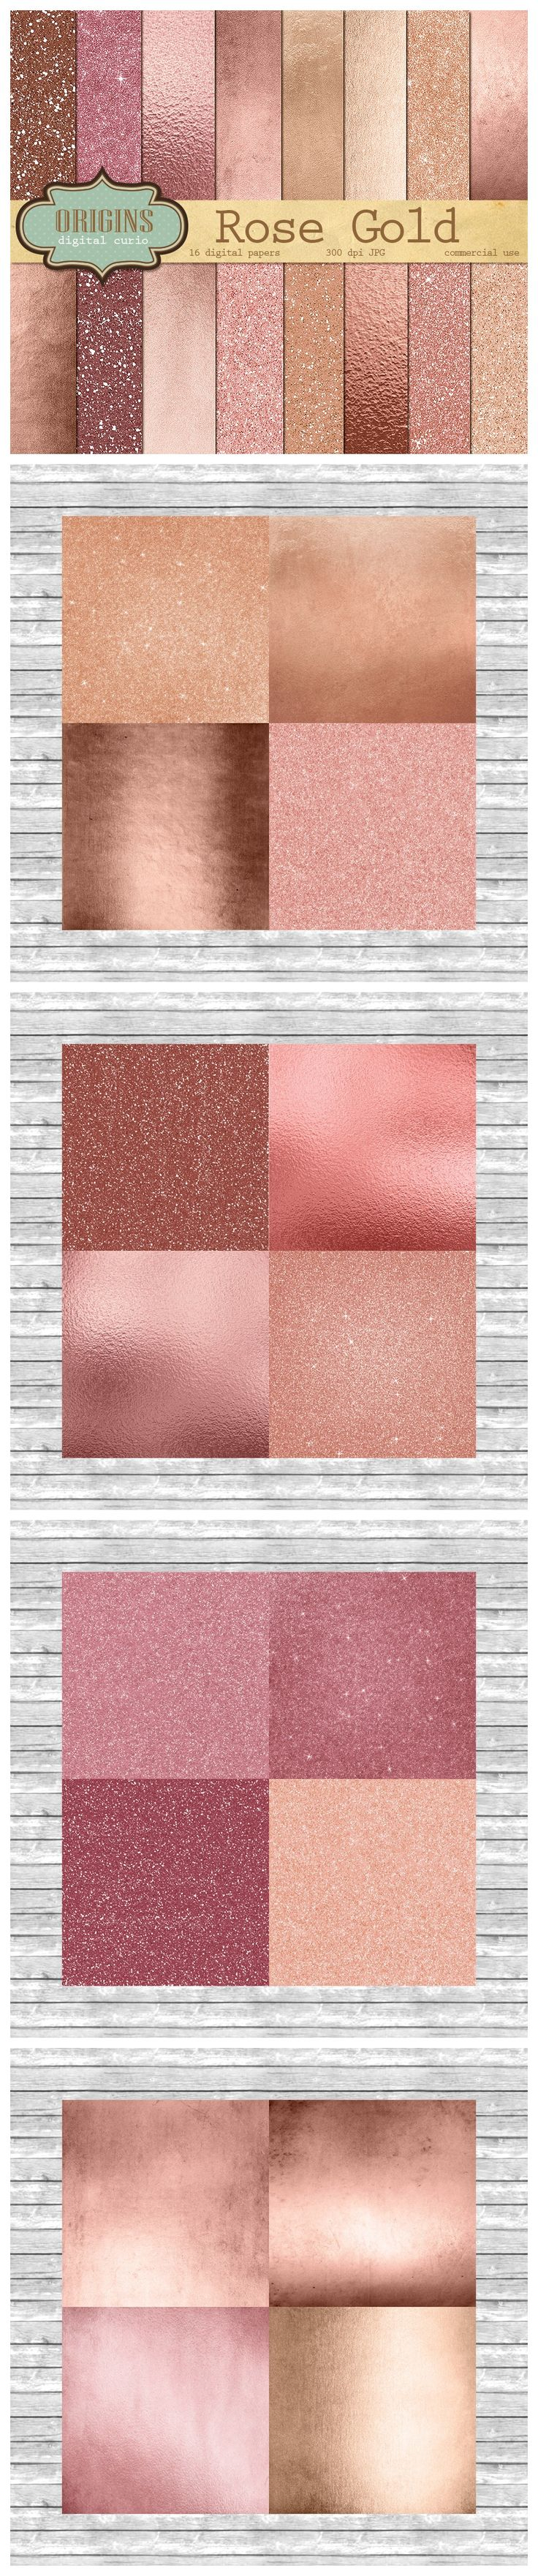 1000+ ideas about Rose Gold Color on Pinterest.